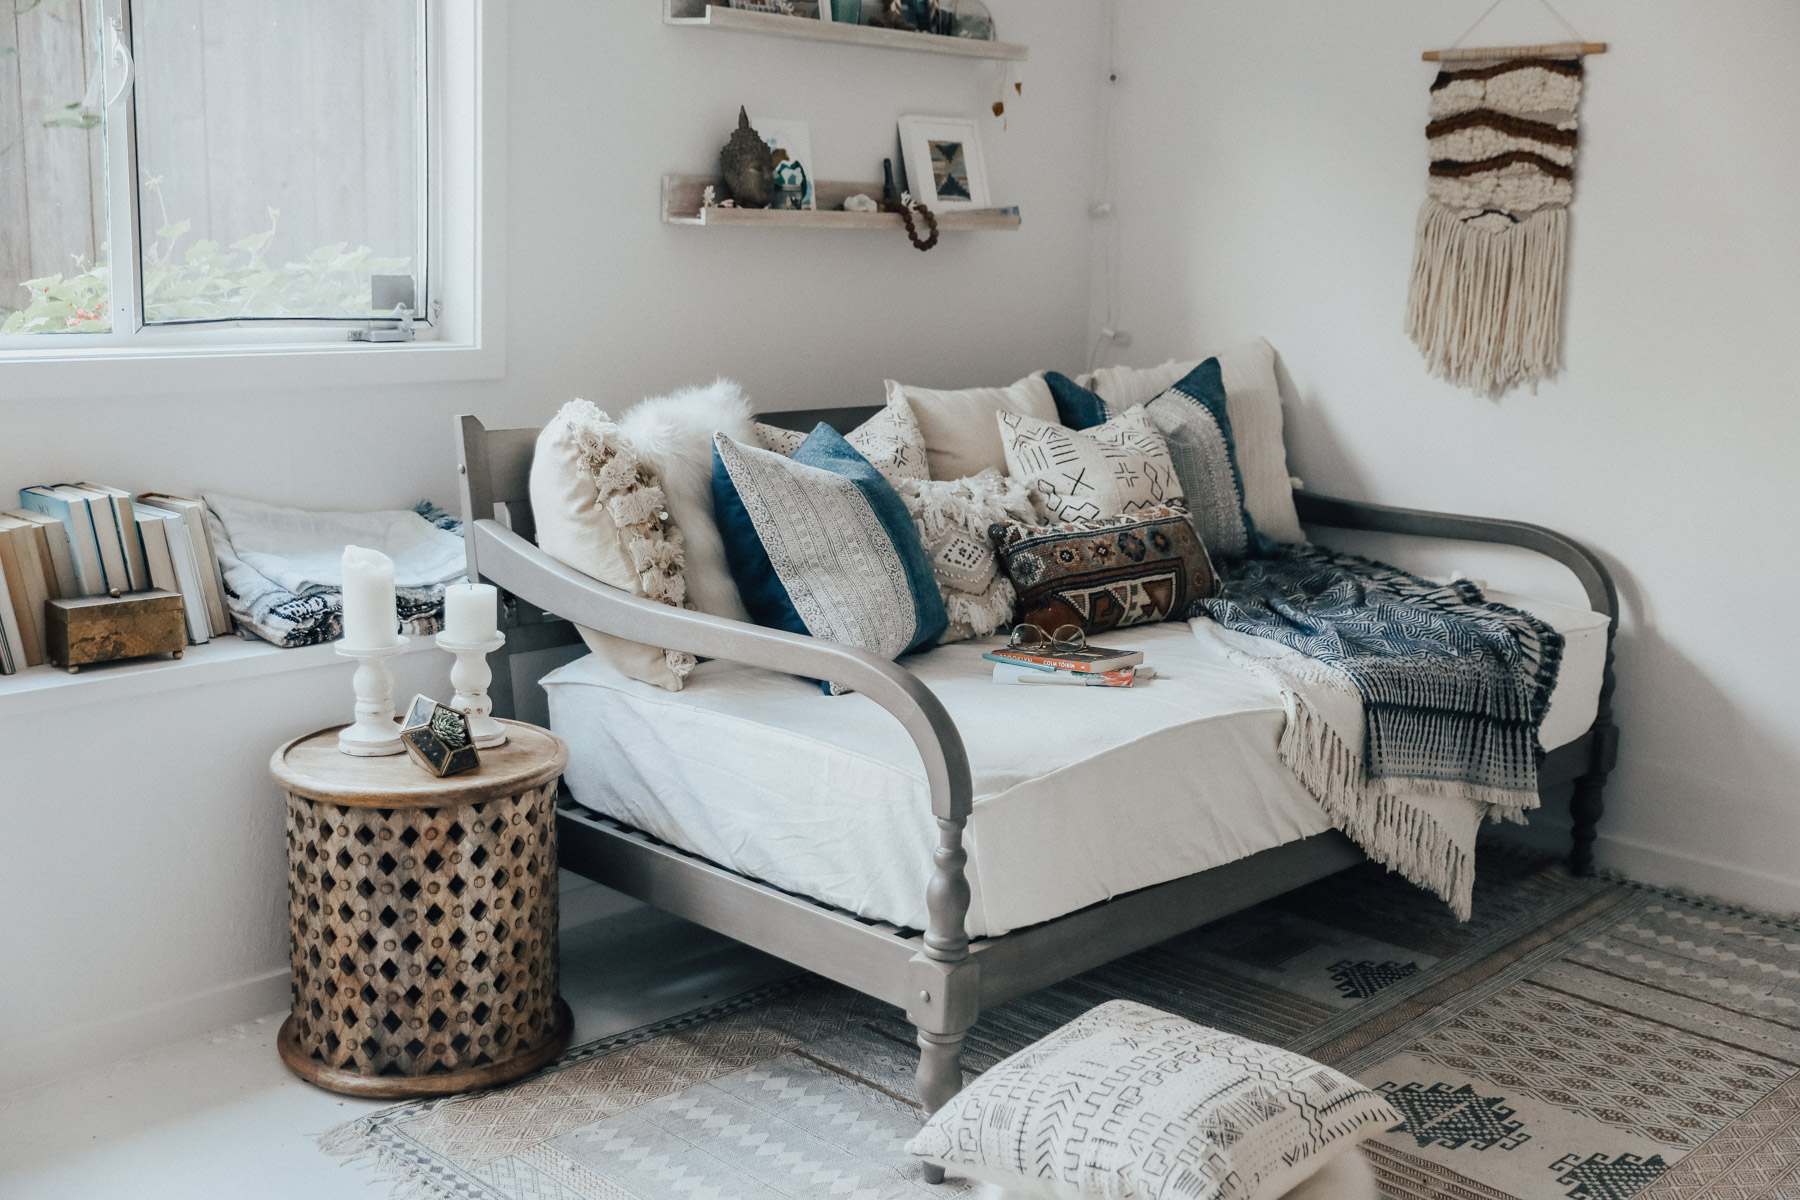 Daybed Studio Apartment